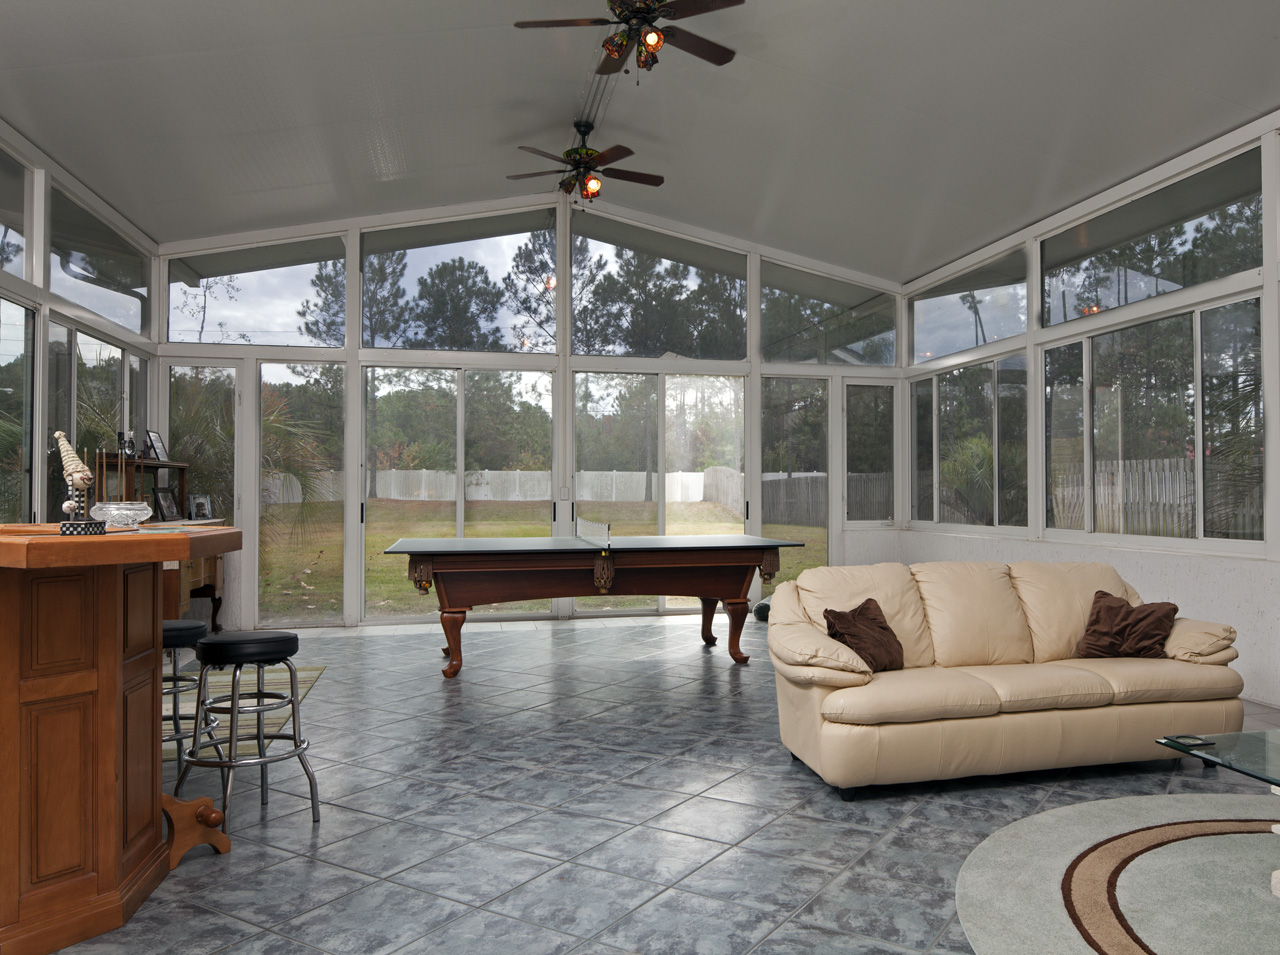 sunroom_1280